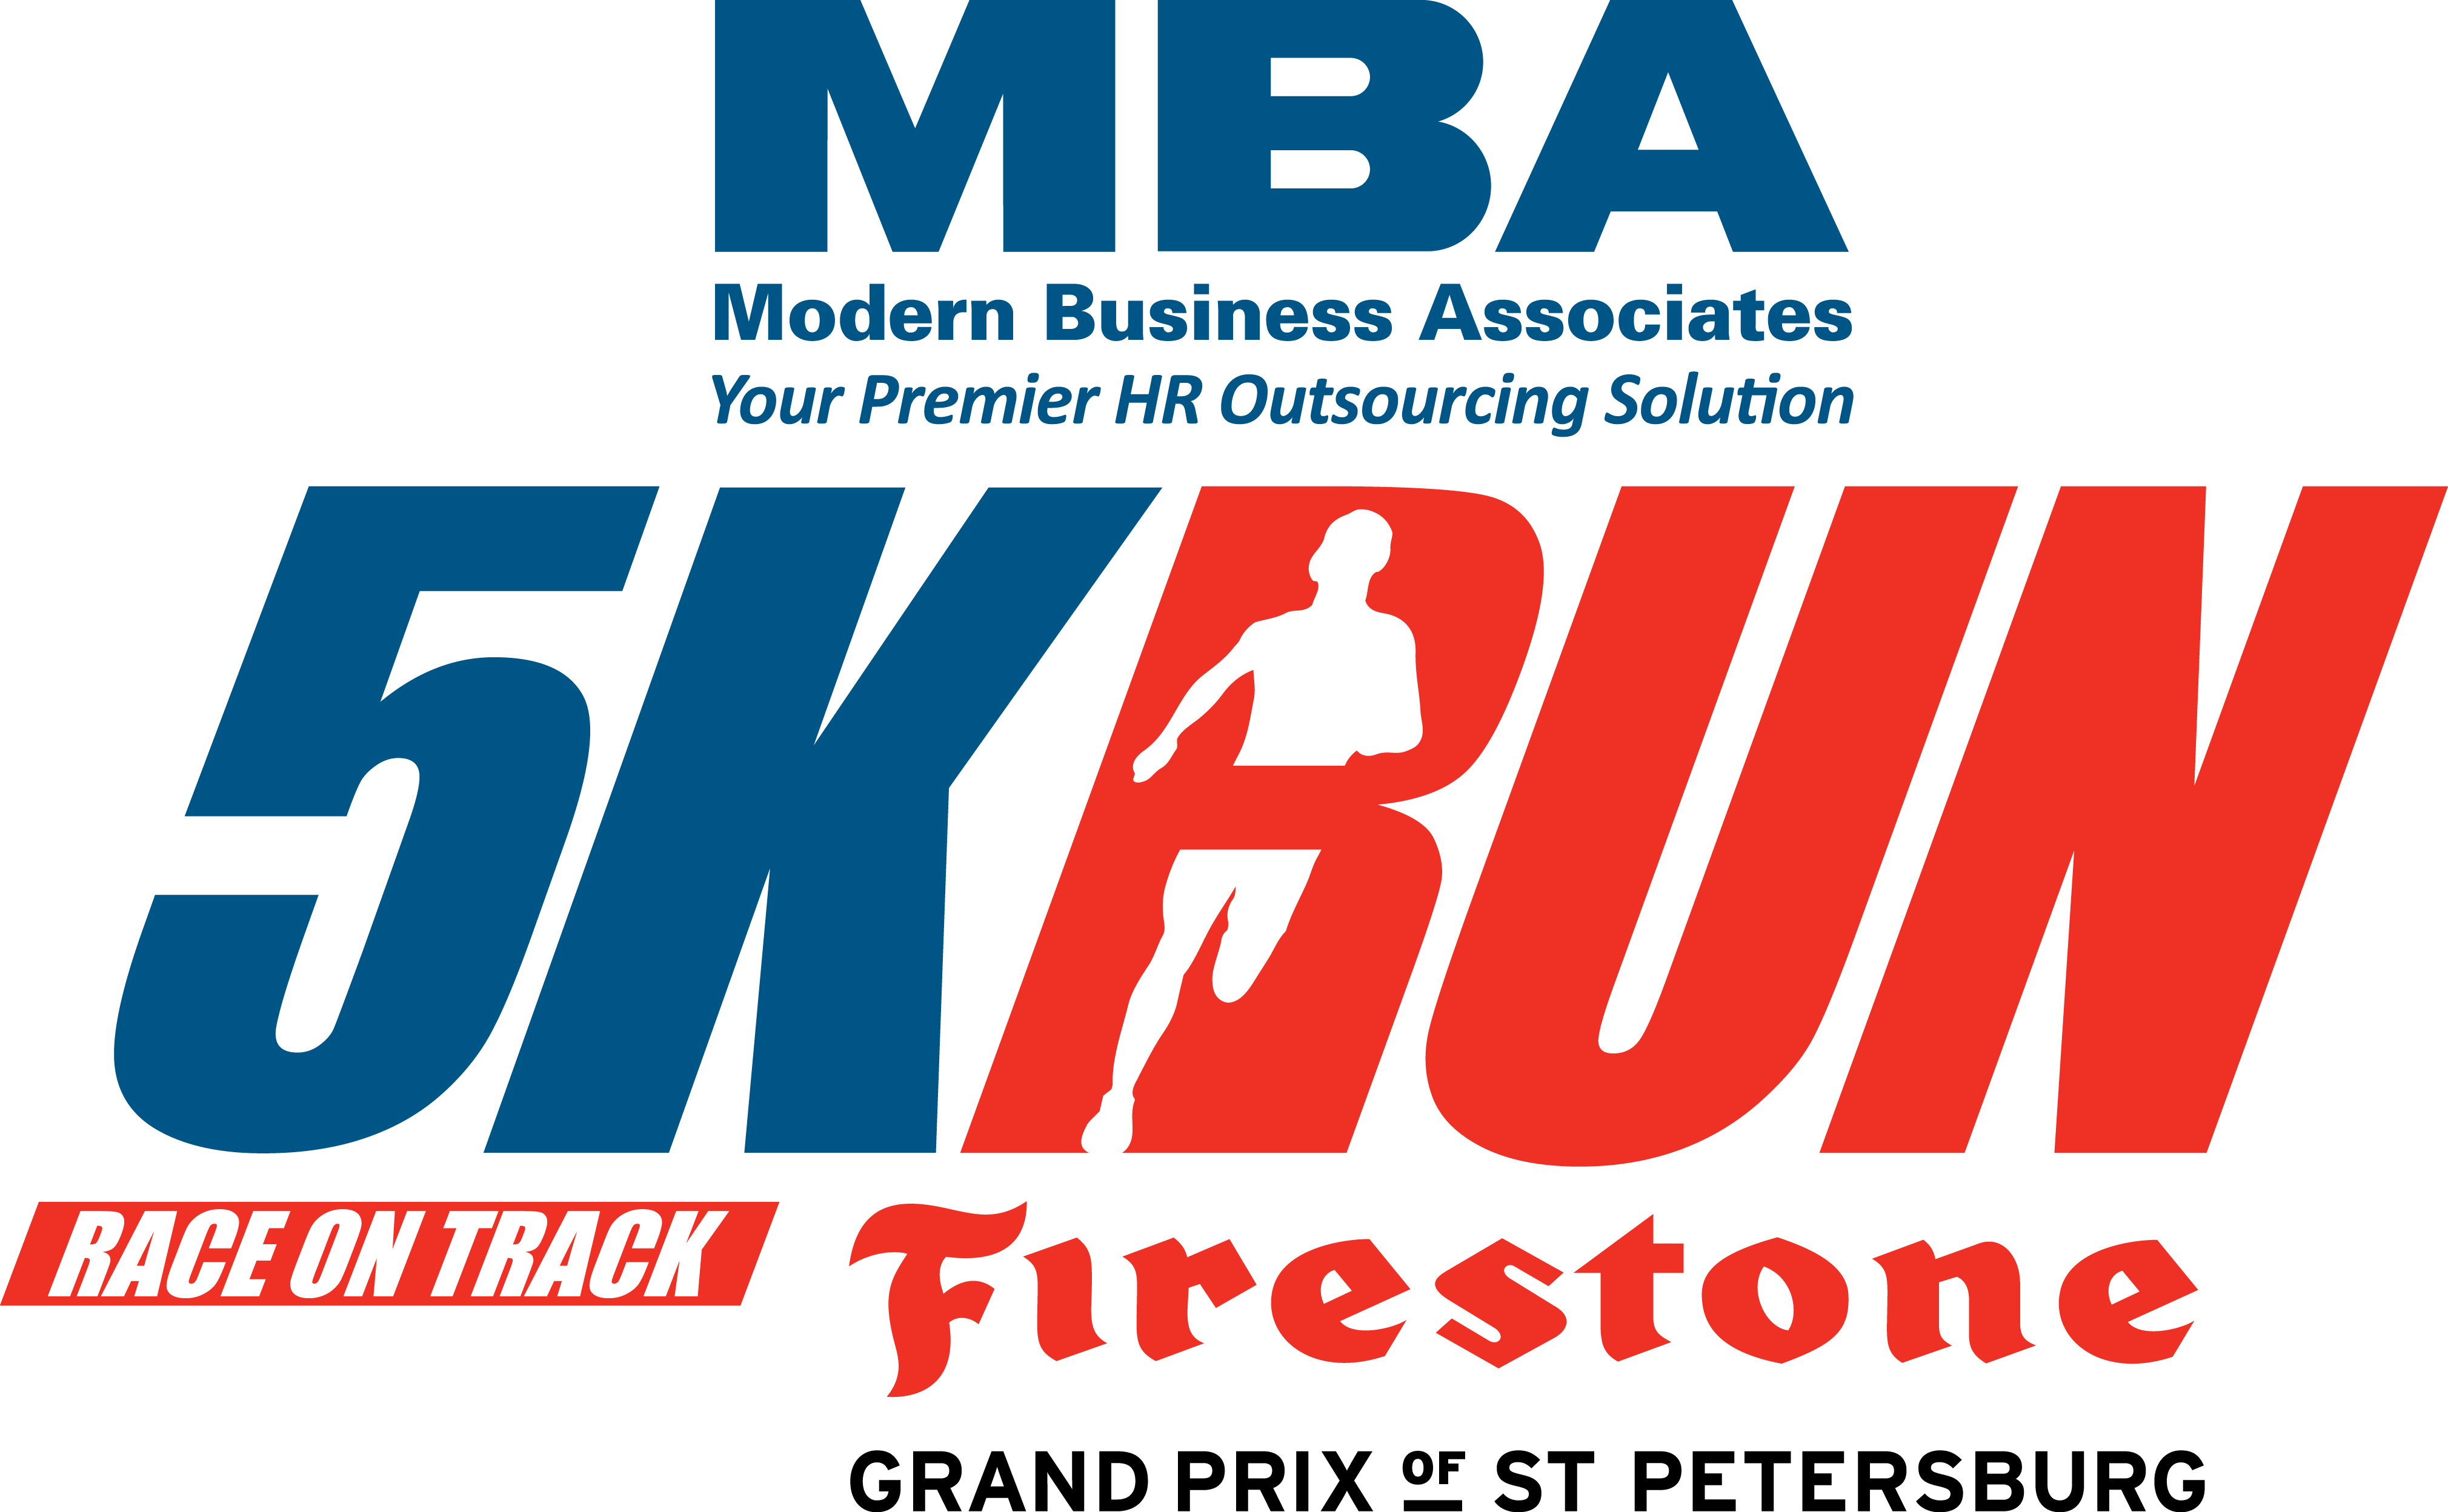 MBA 5K Run on the Firestone Grand Prix of St. Petersburg track logo